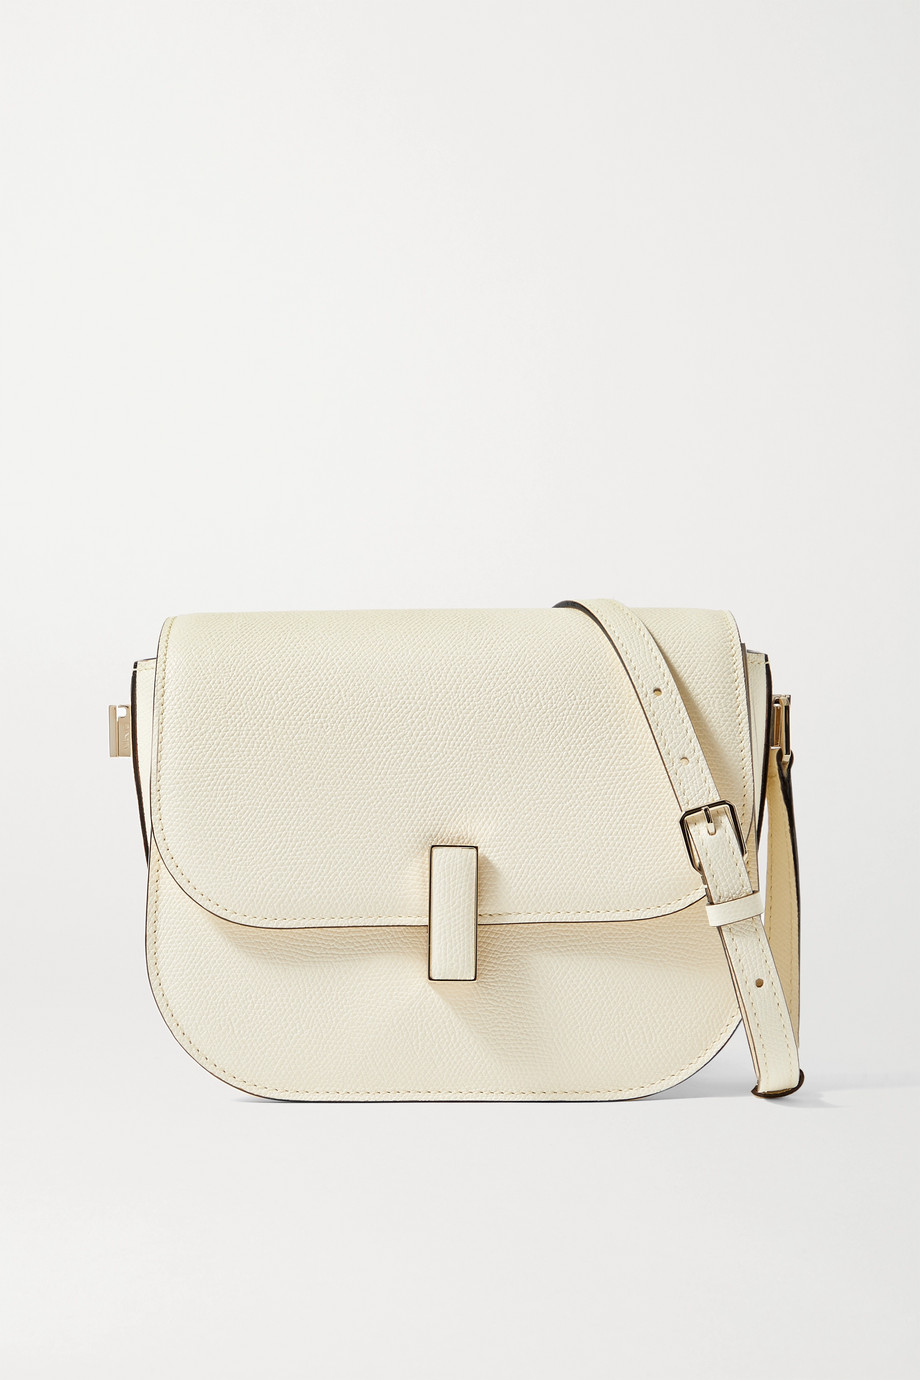 Valextra Iside small textured-leather shoulder bag